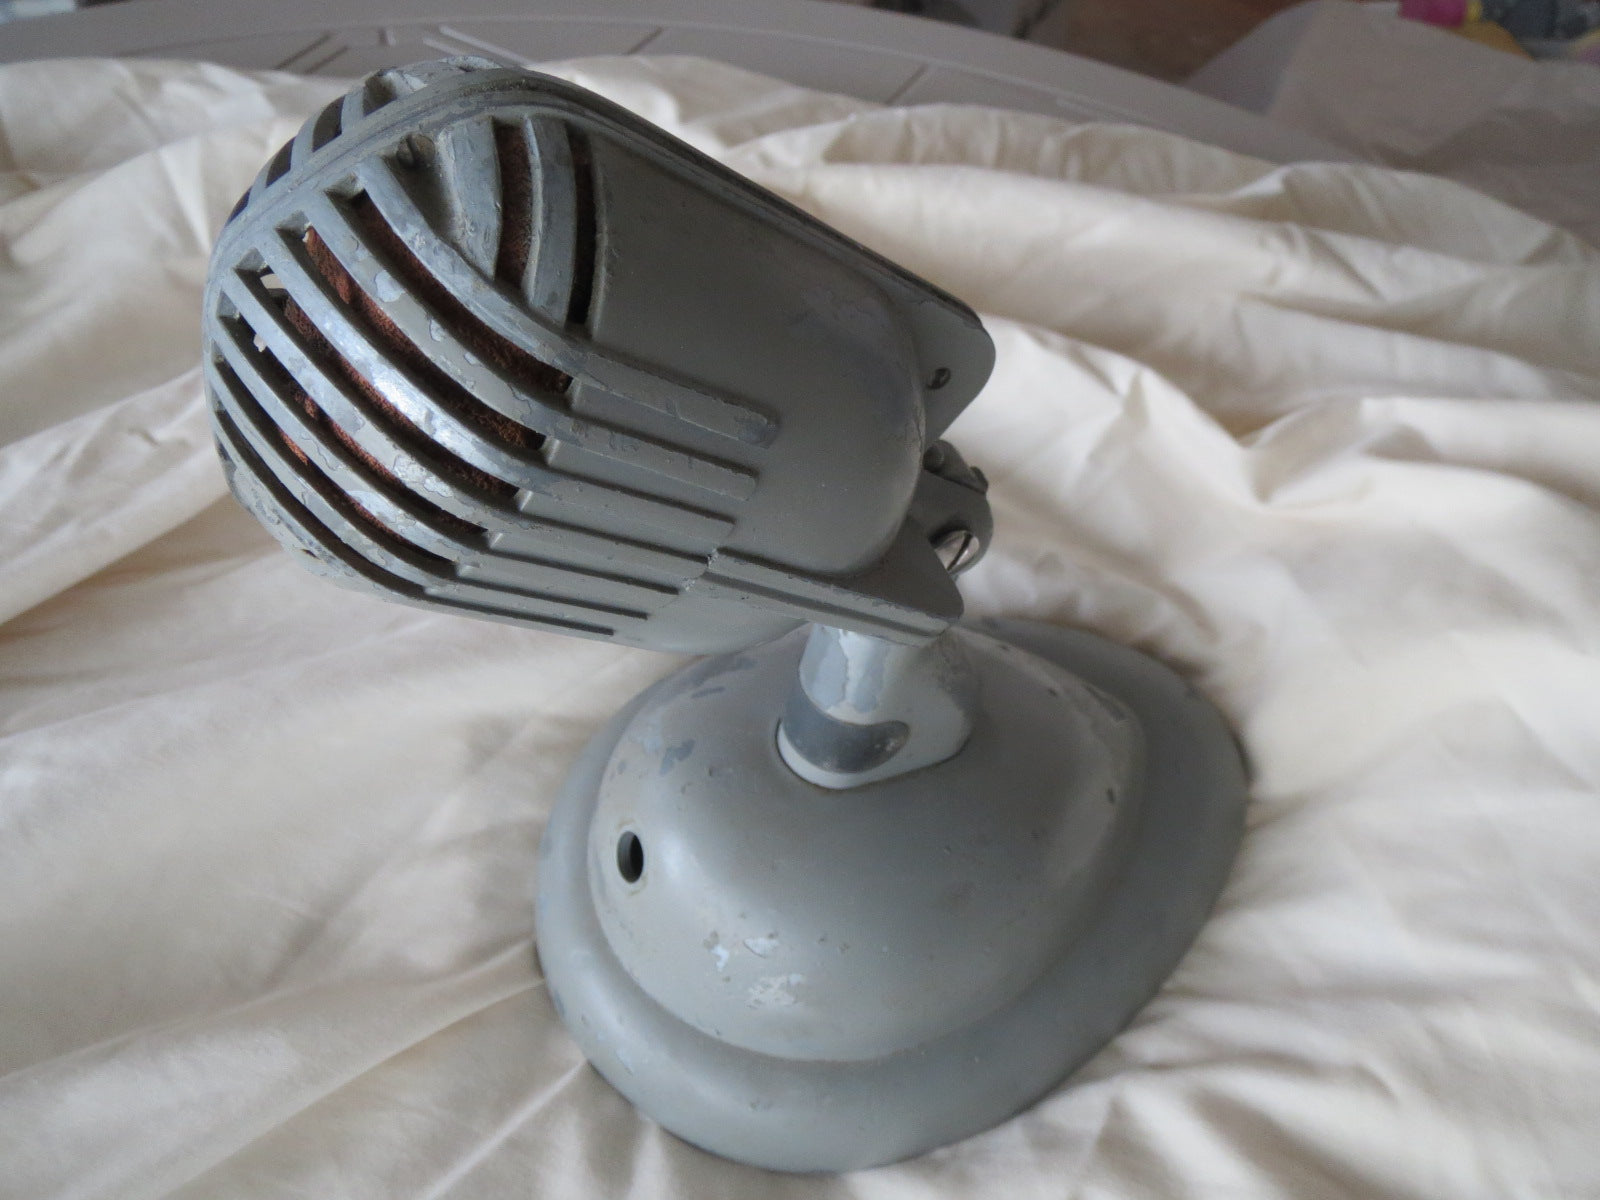 SHURE 708A 'STRATOLINER' VINTAGE CARDIOID MICROPHONE WITH S36 STAND